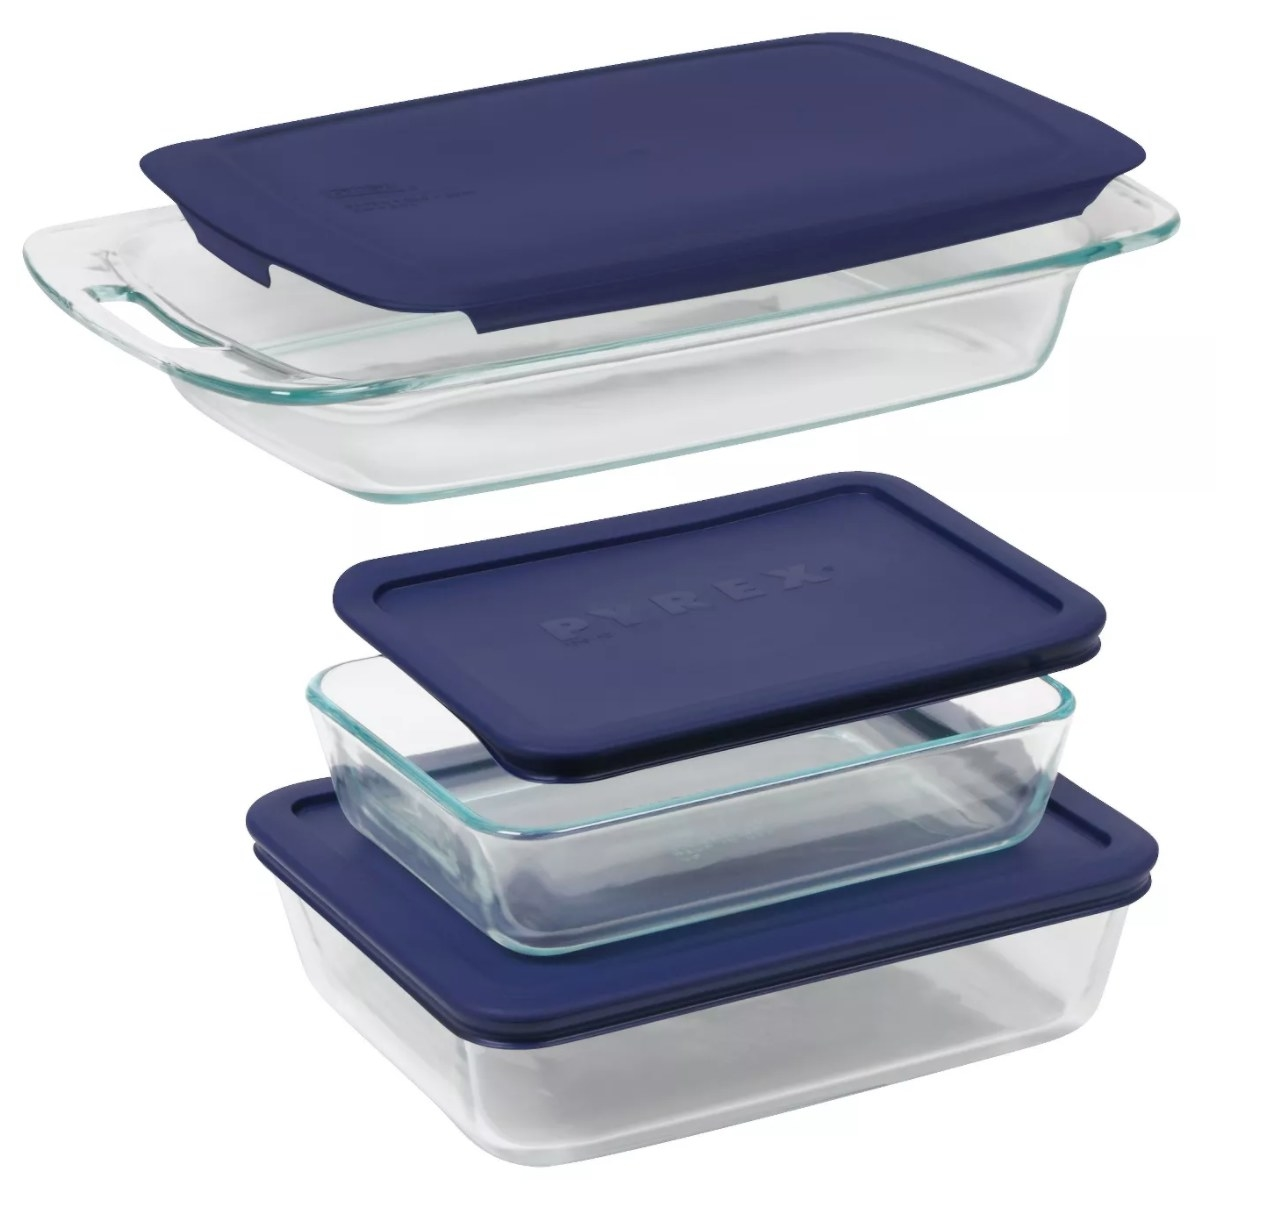 The three glass dishes with blue lids